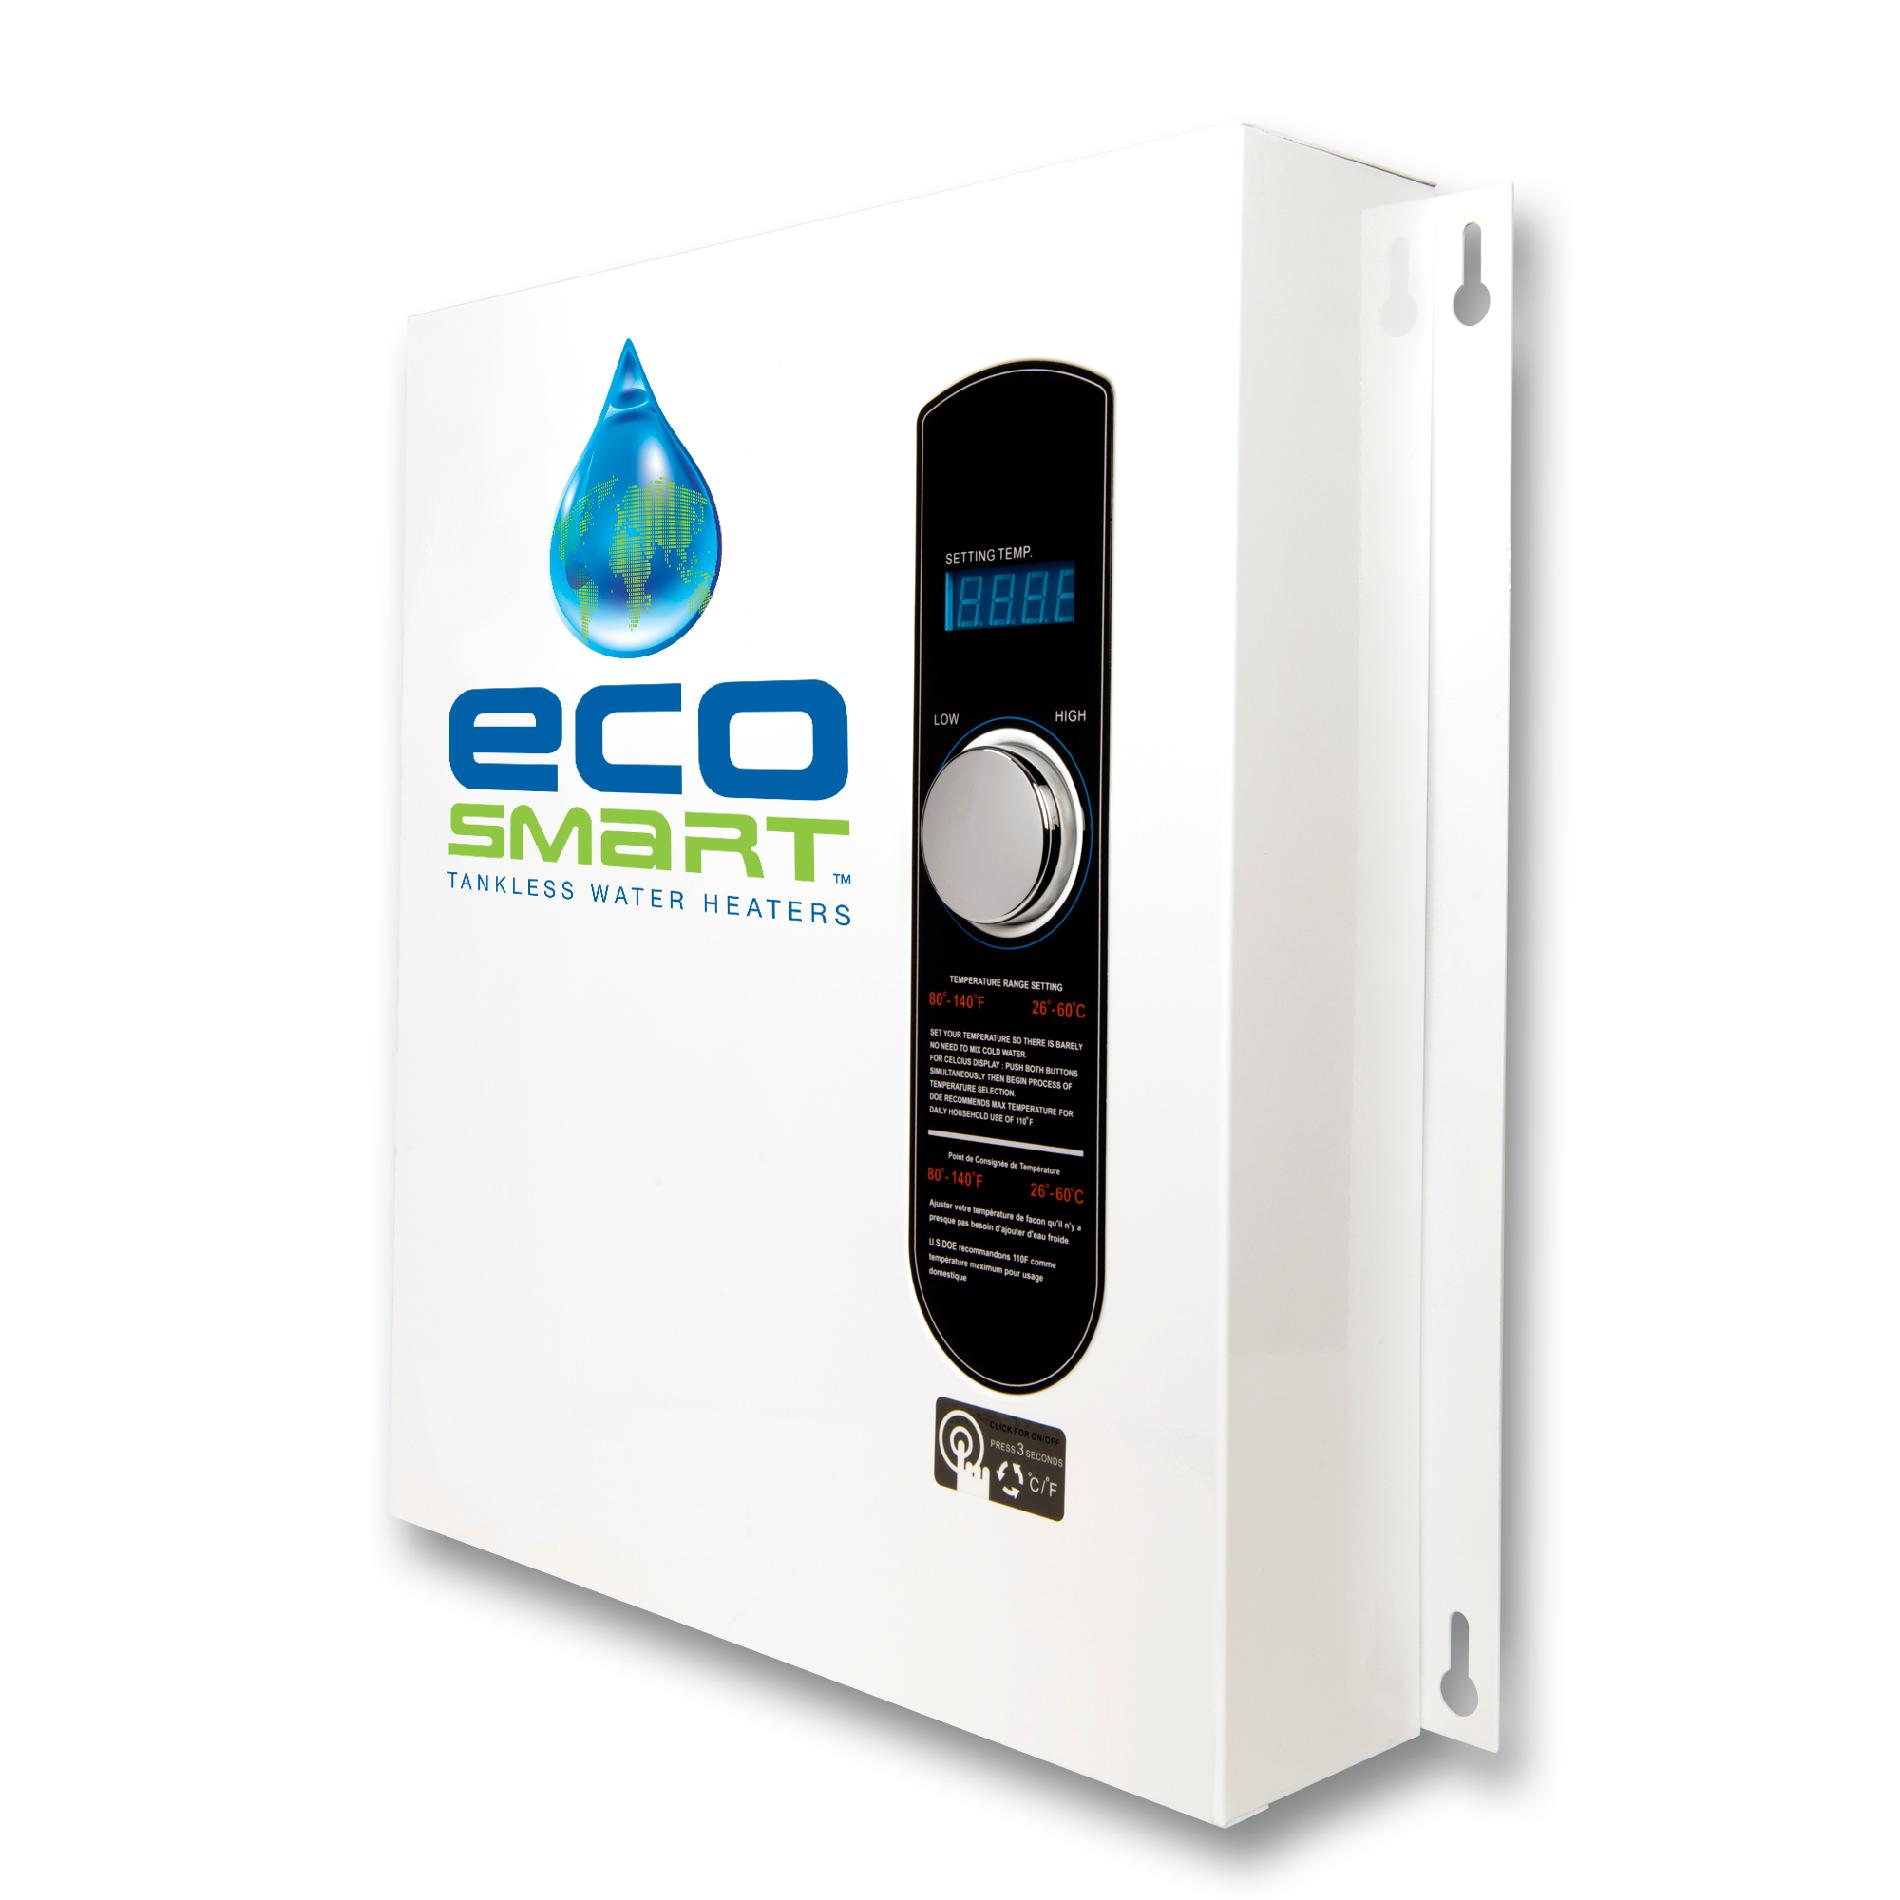 EcoSmart Self Modulating ECO 27 Tankless Water Heater with Patented Self Modulating Technology